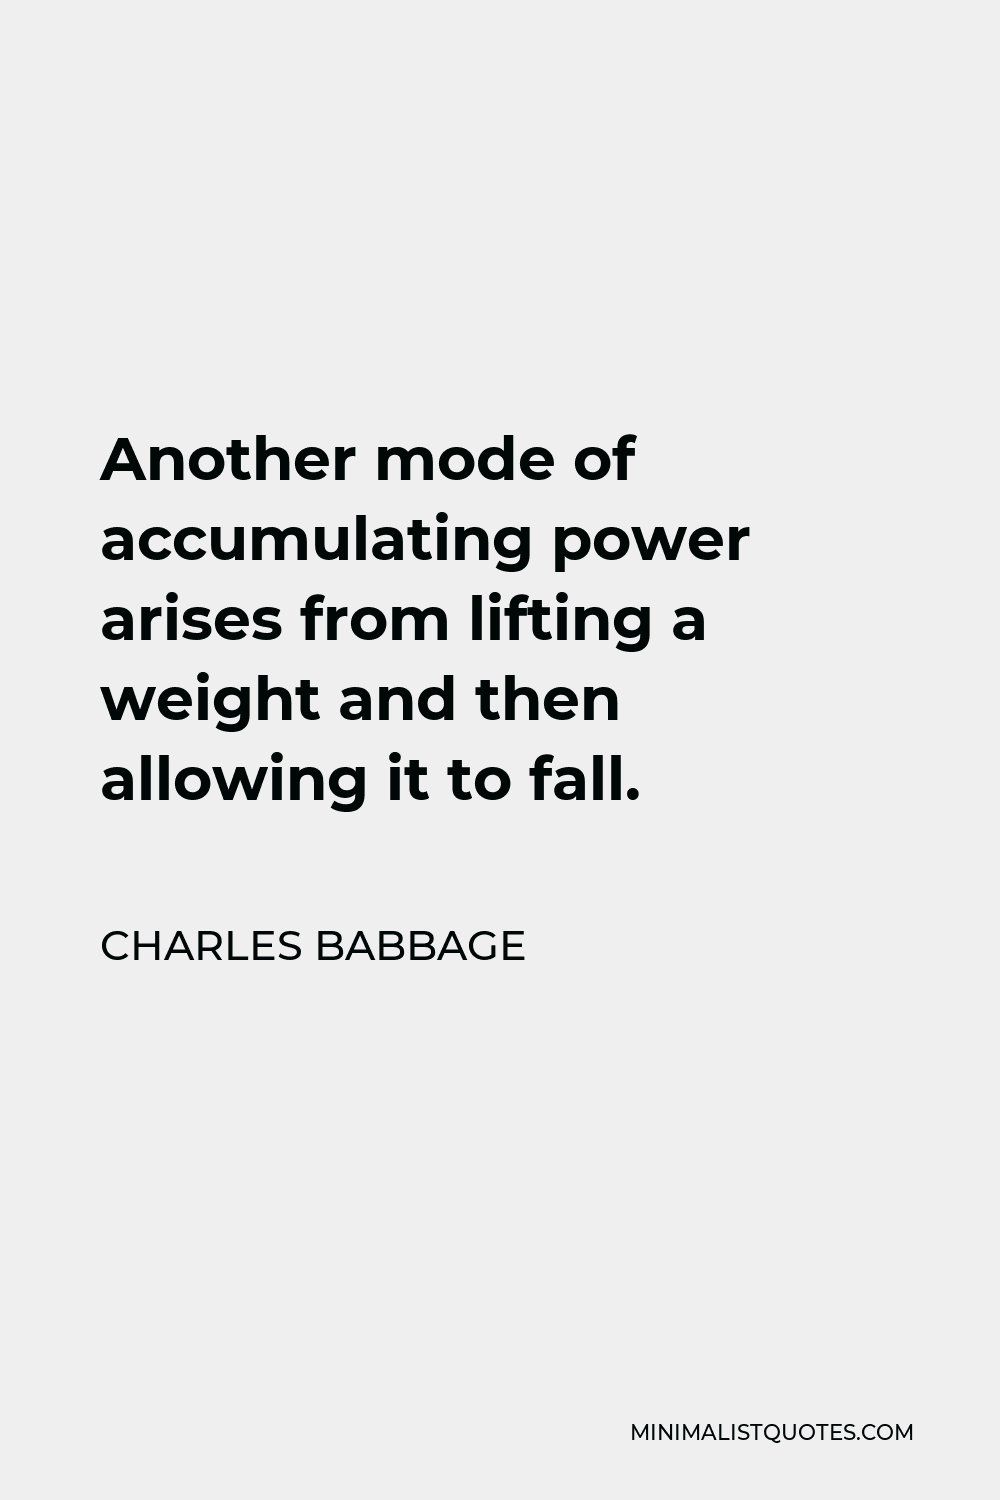 Charles Babbage Quote - Another mode of accumulating power arises from lifting a weight and then allowing it to fall.